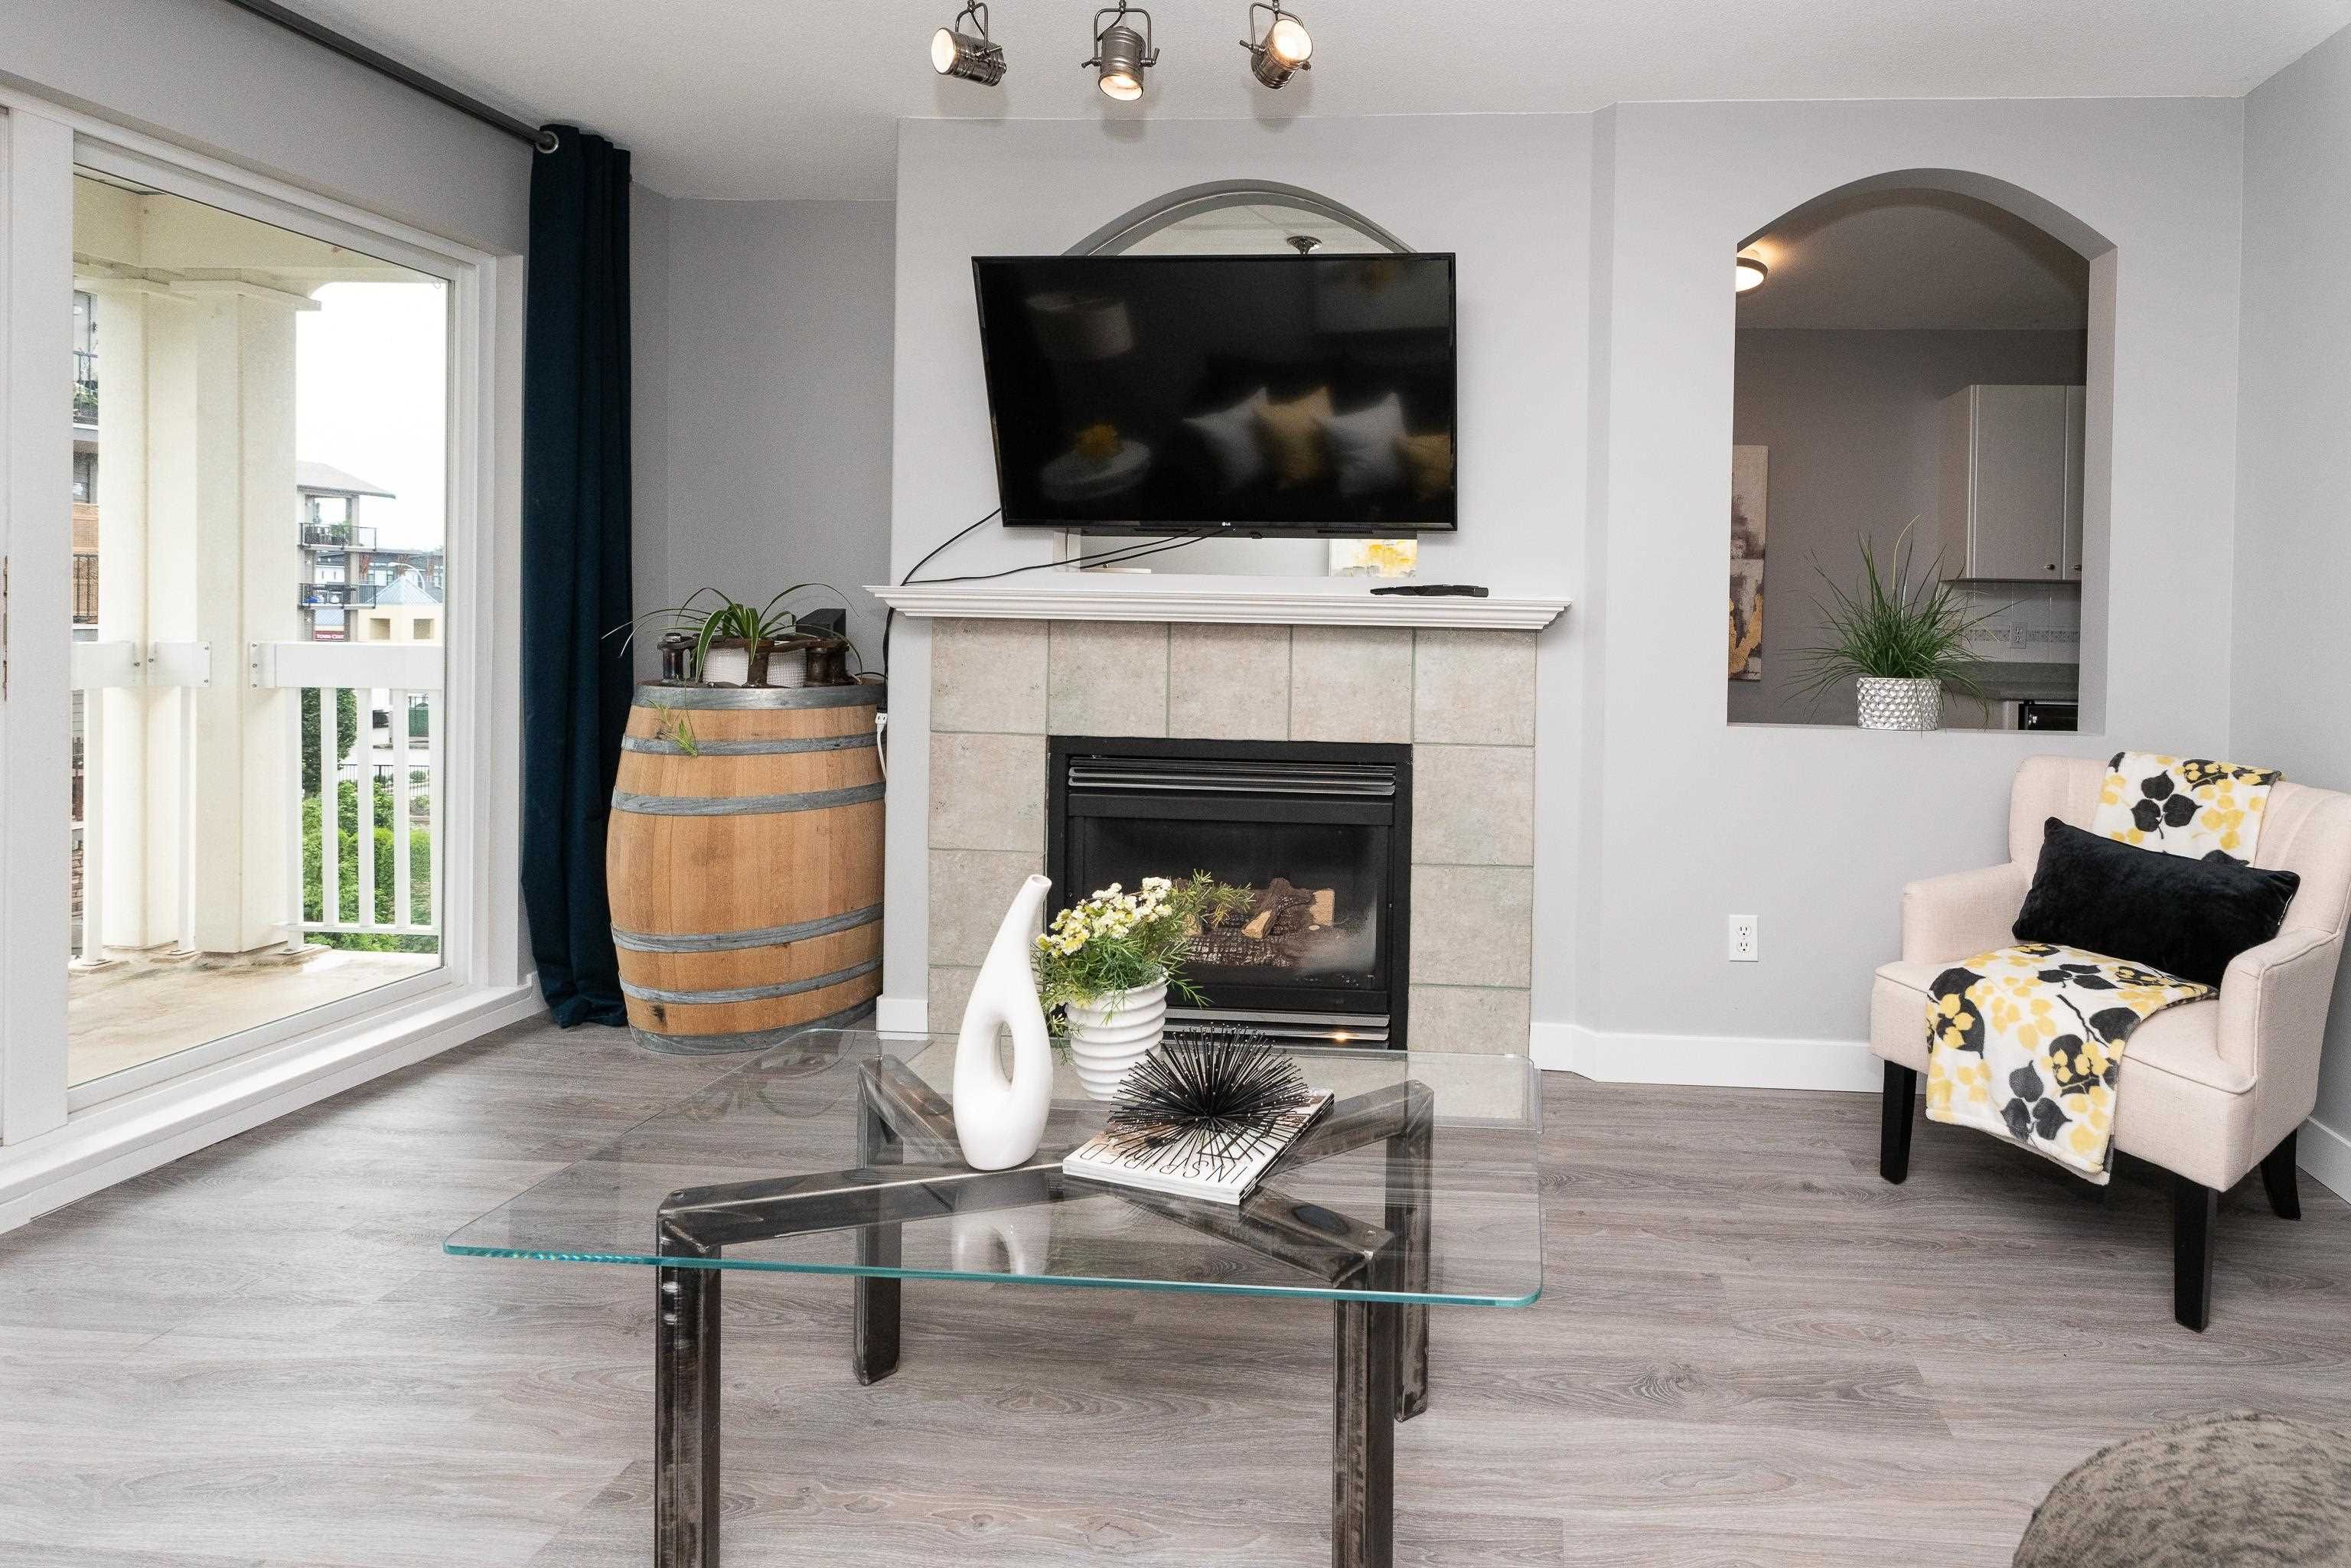 """Photo 3: Photos: 407 22022 49 Avenue in Langley: Murrayville Condo for sale in """"Murray Green"""" : MLS®# R2613823"""